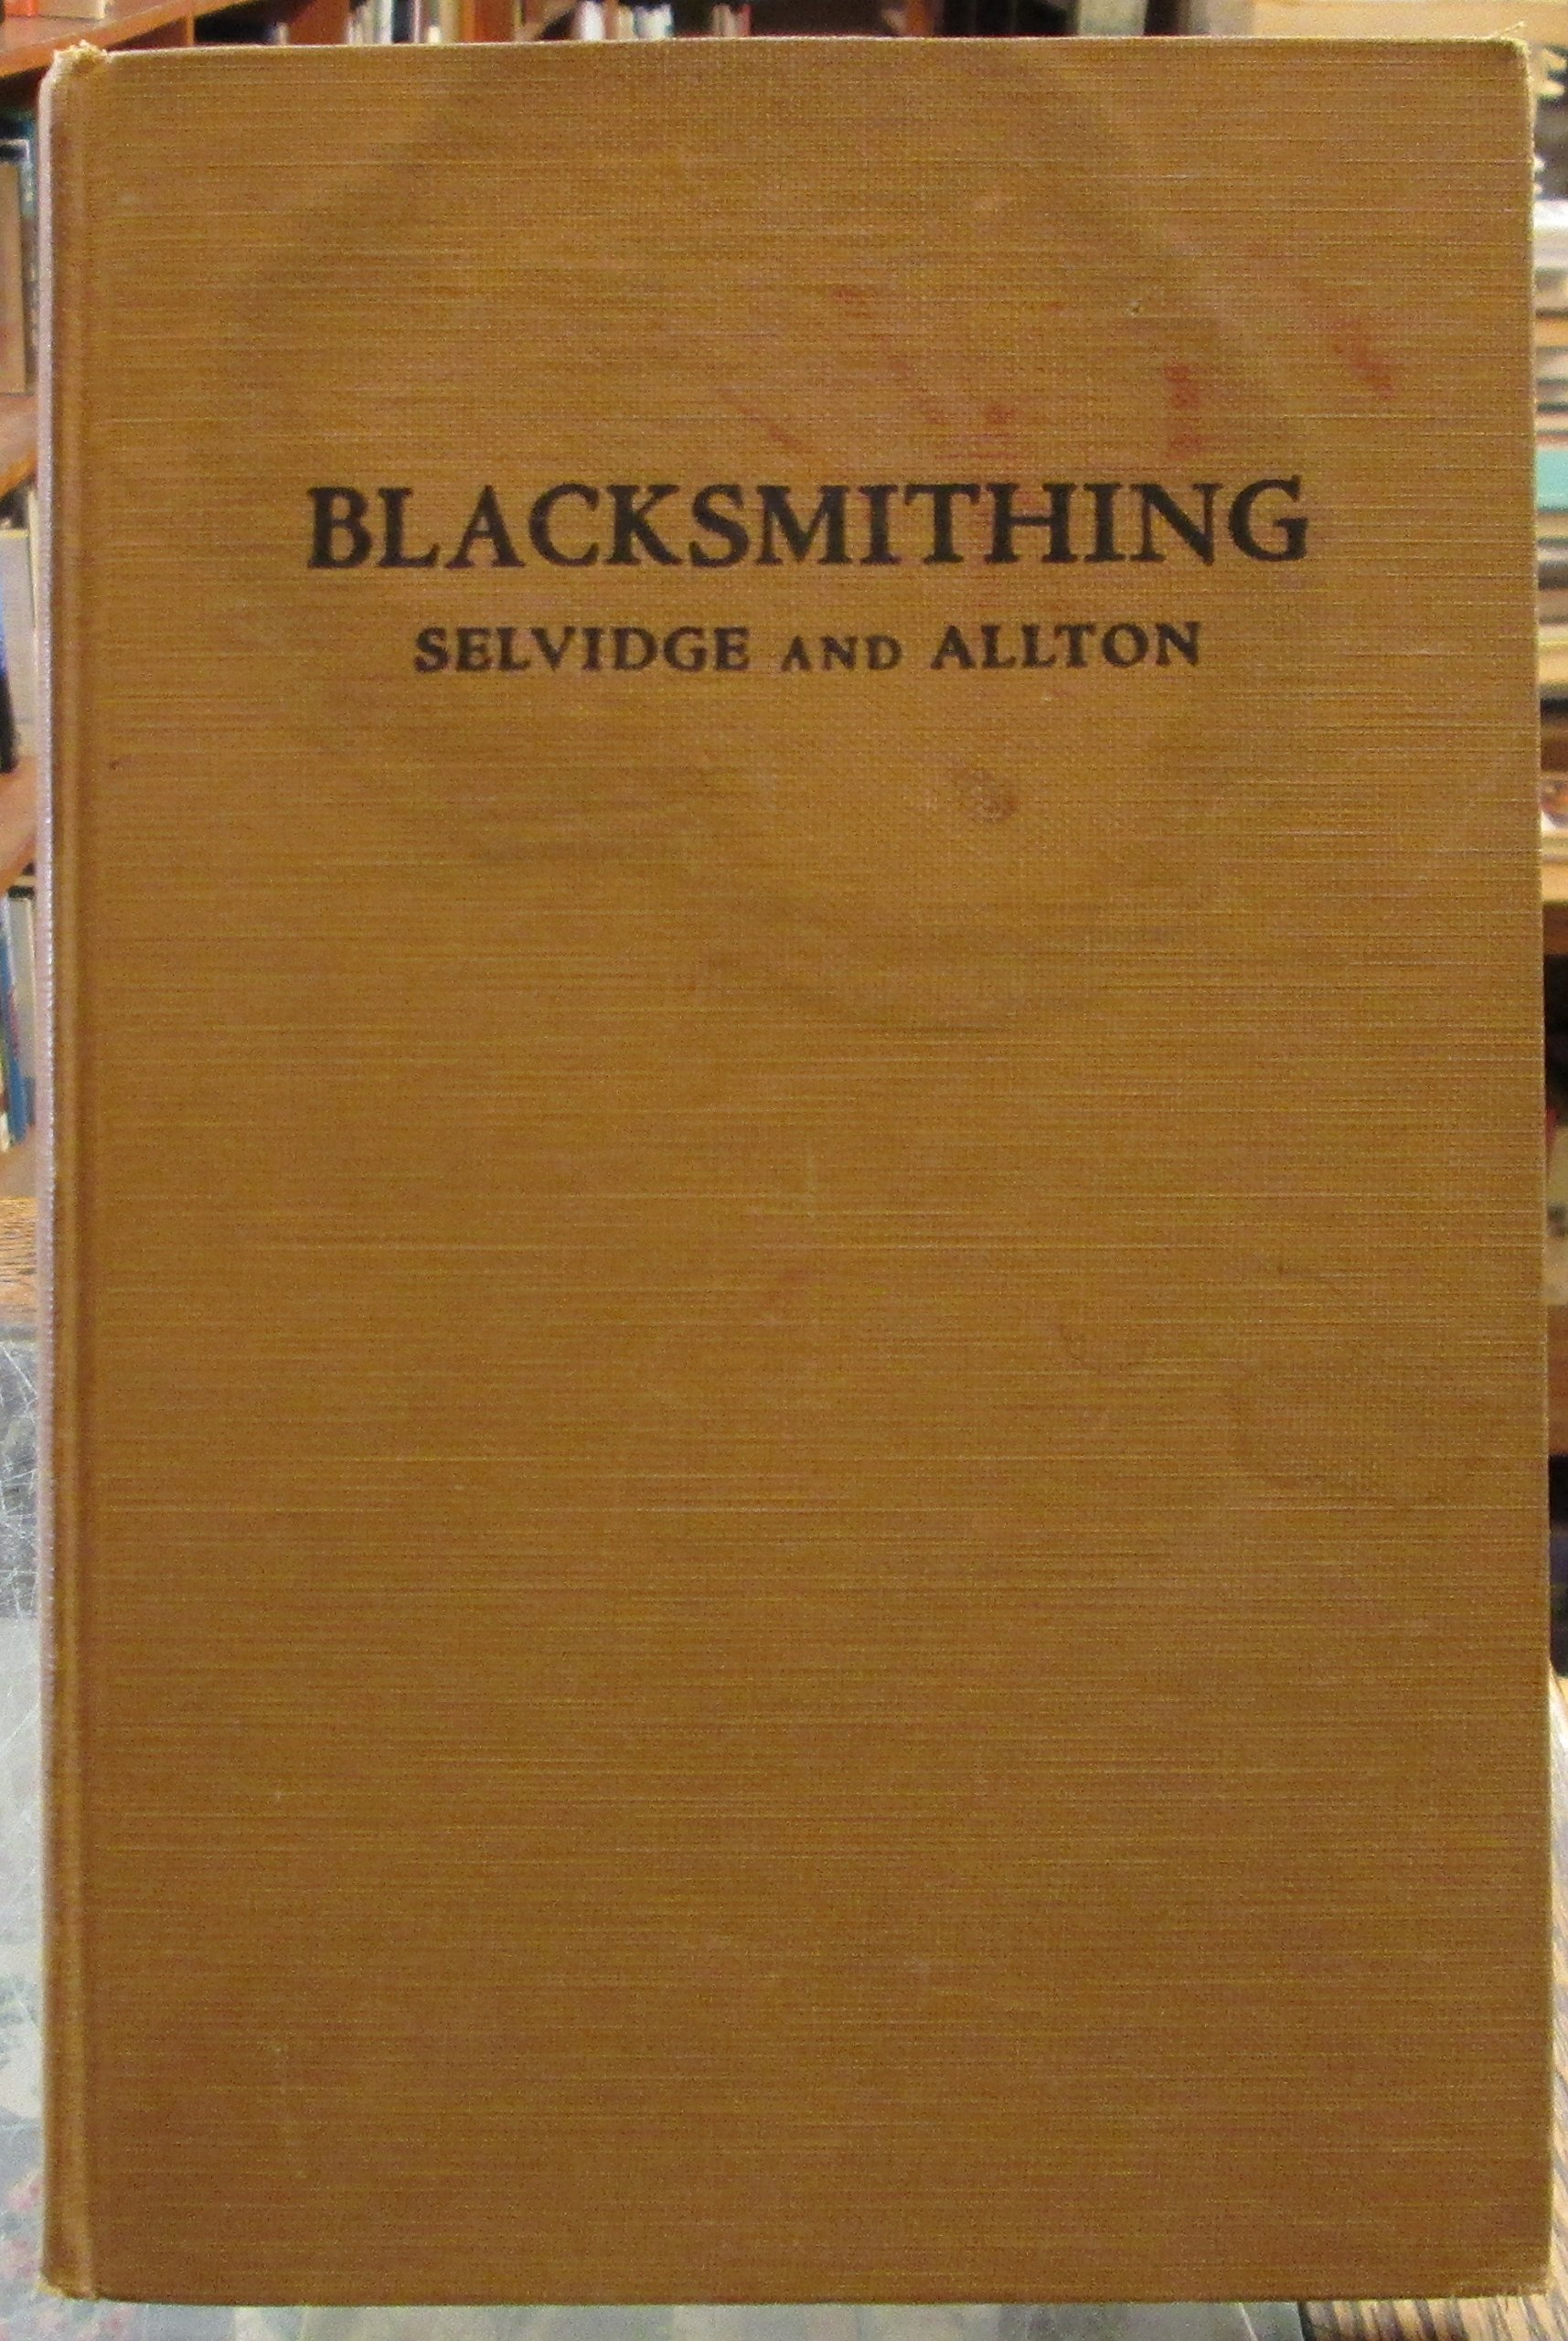 Blacksmithing a Manual for Use in School and Shop: R. W. Selvidge, J. M.  Allton: Amazon.com: Books